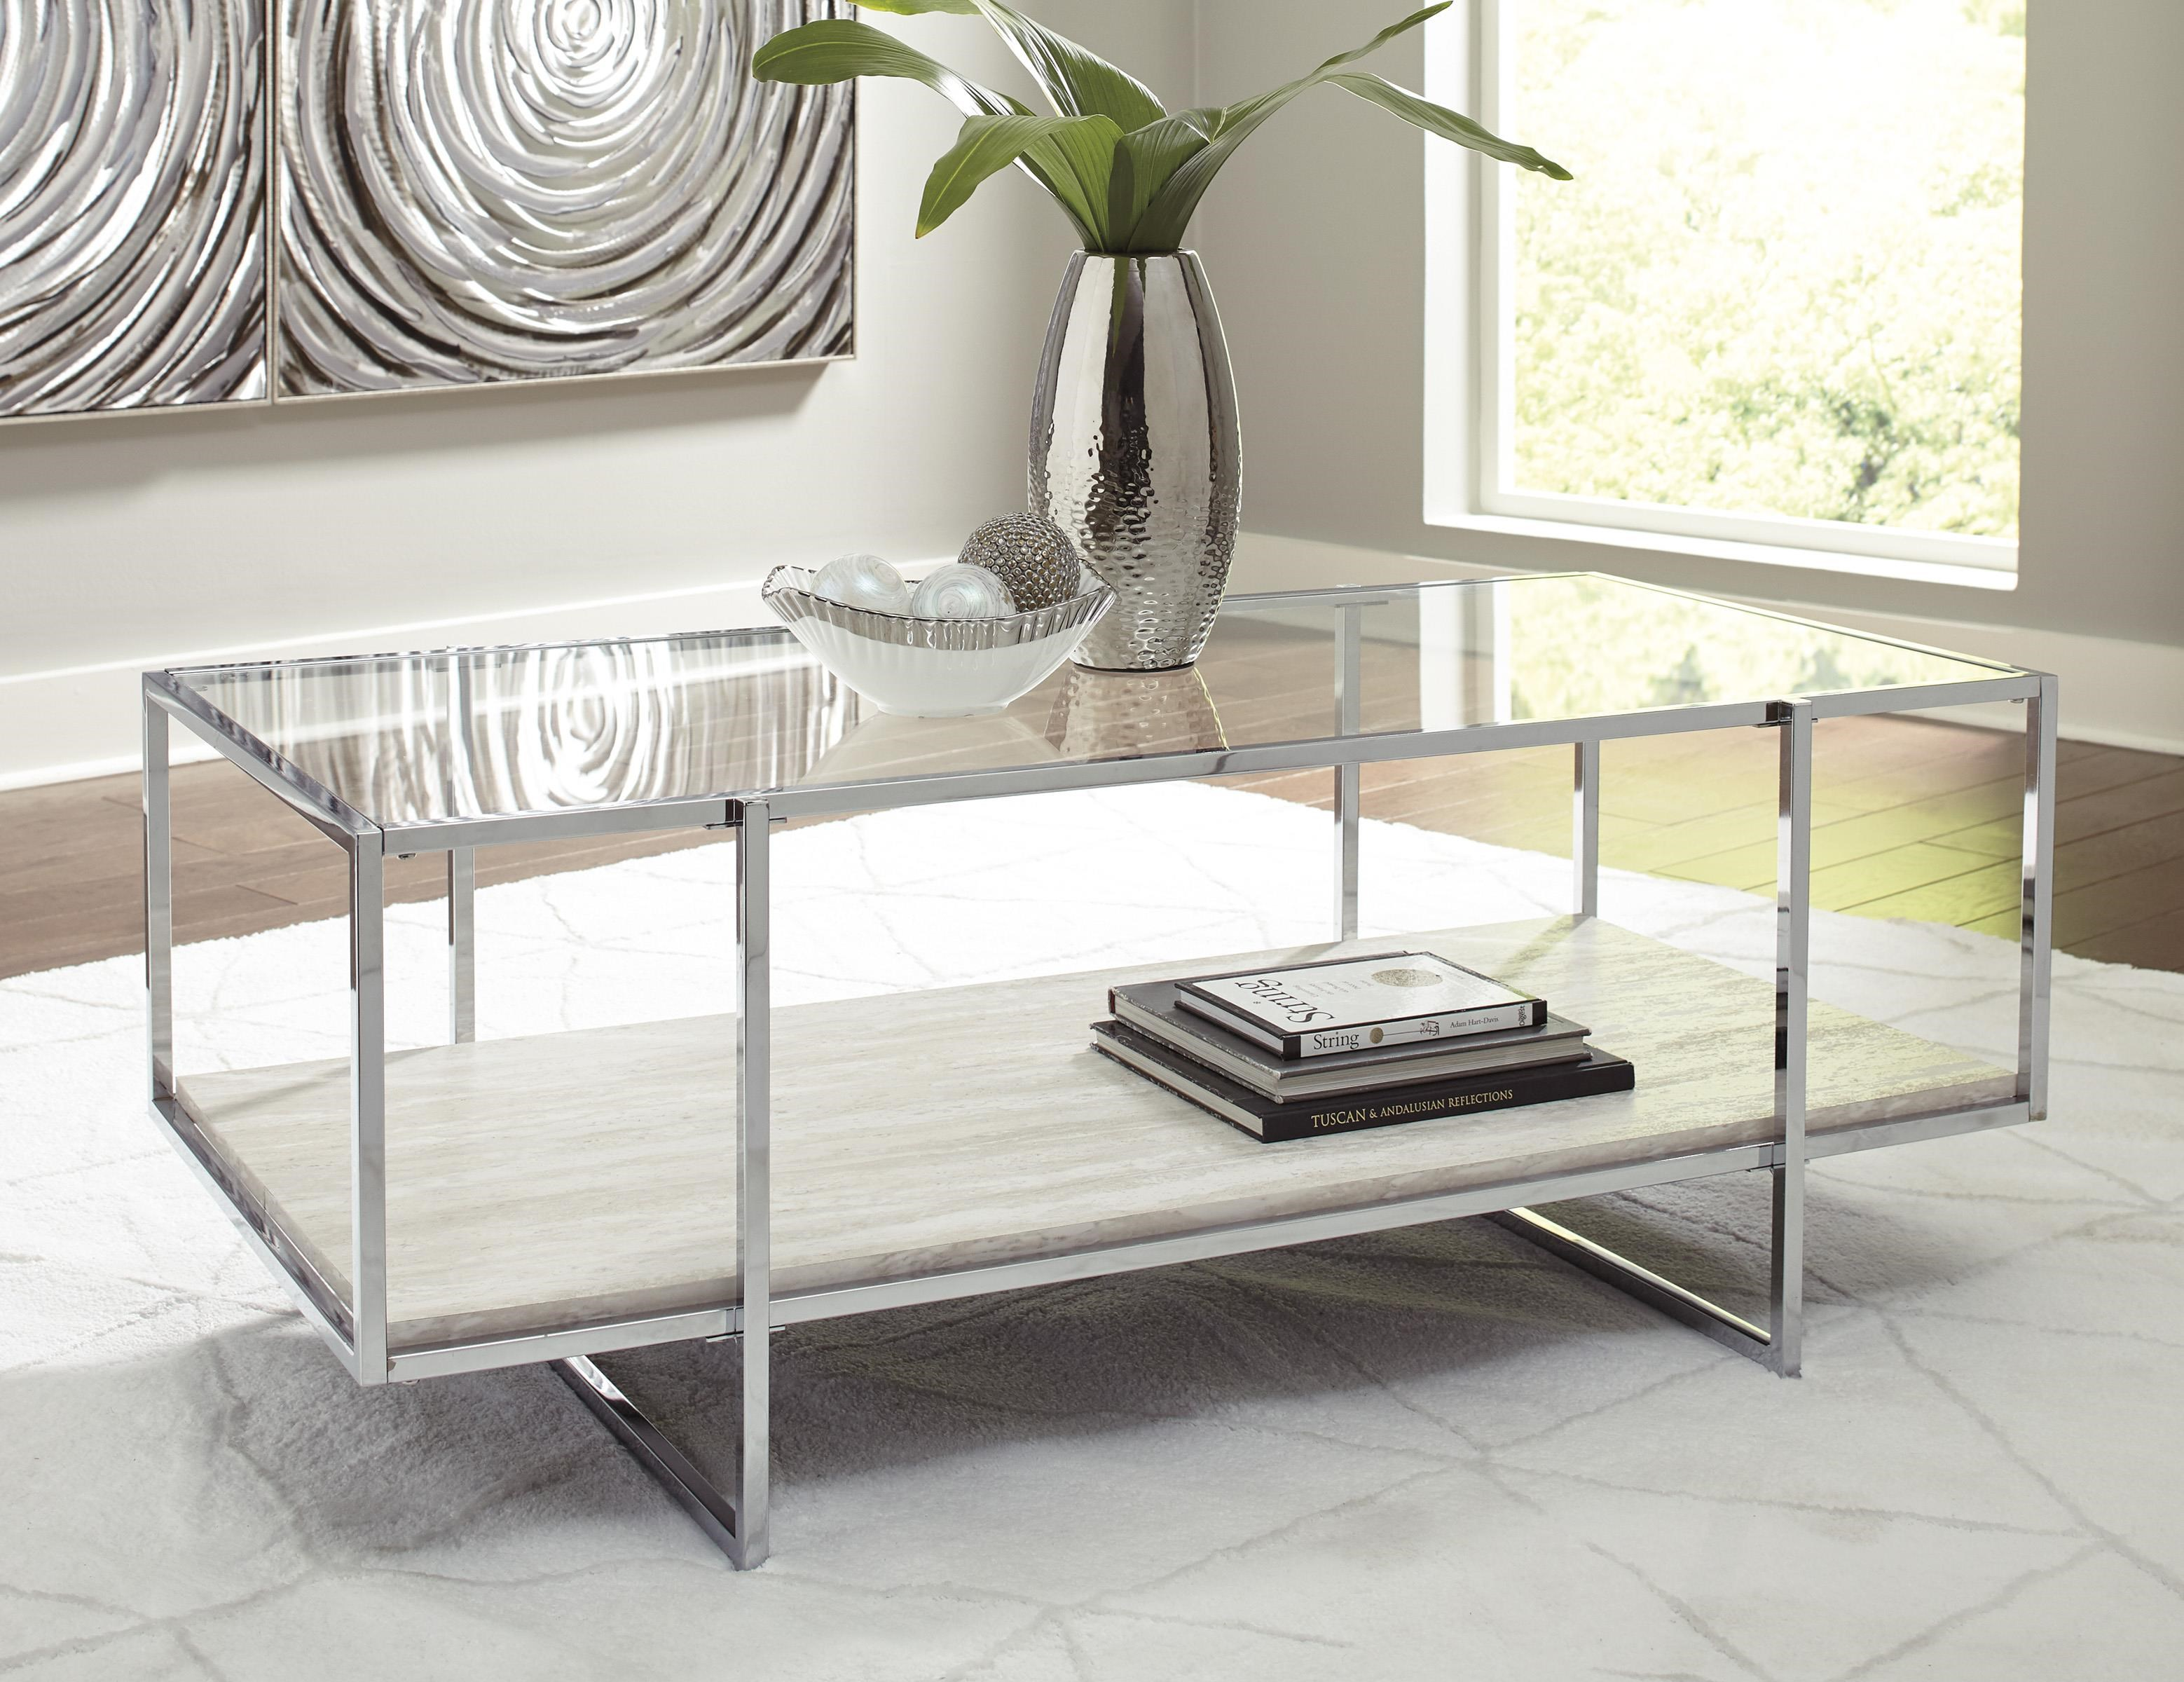 Bodalli 2 Piece Coffee Table Set by Signature Design by Ashley at Sam Levitz Furniture